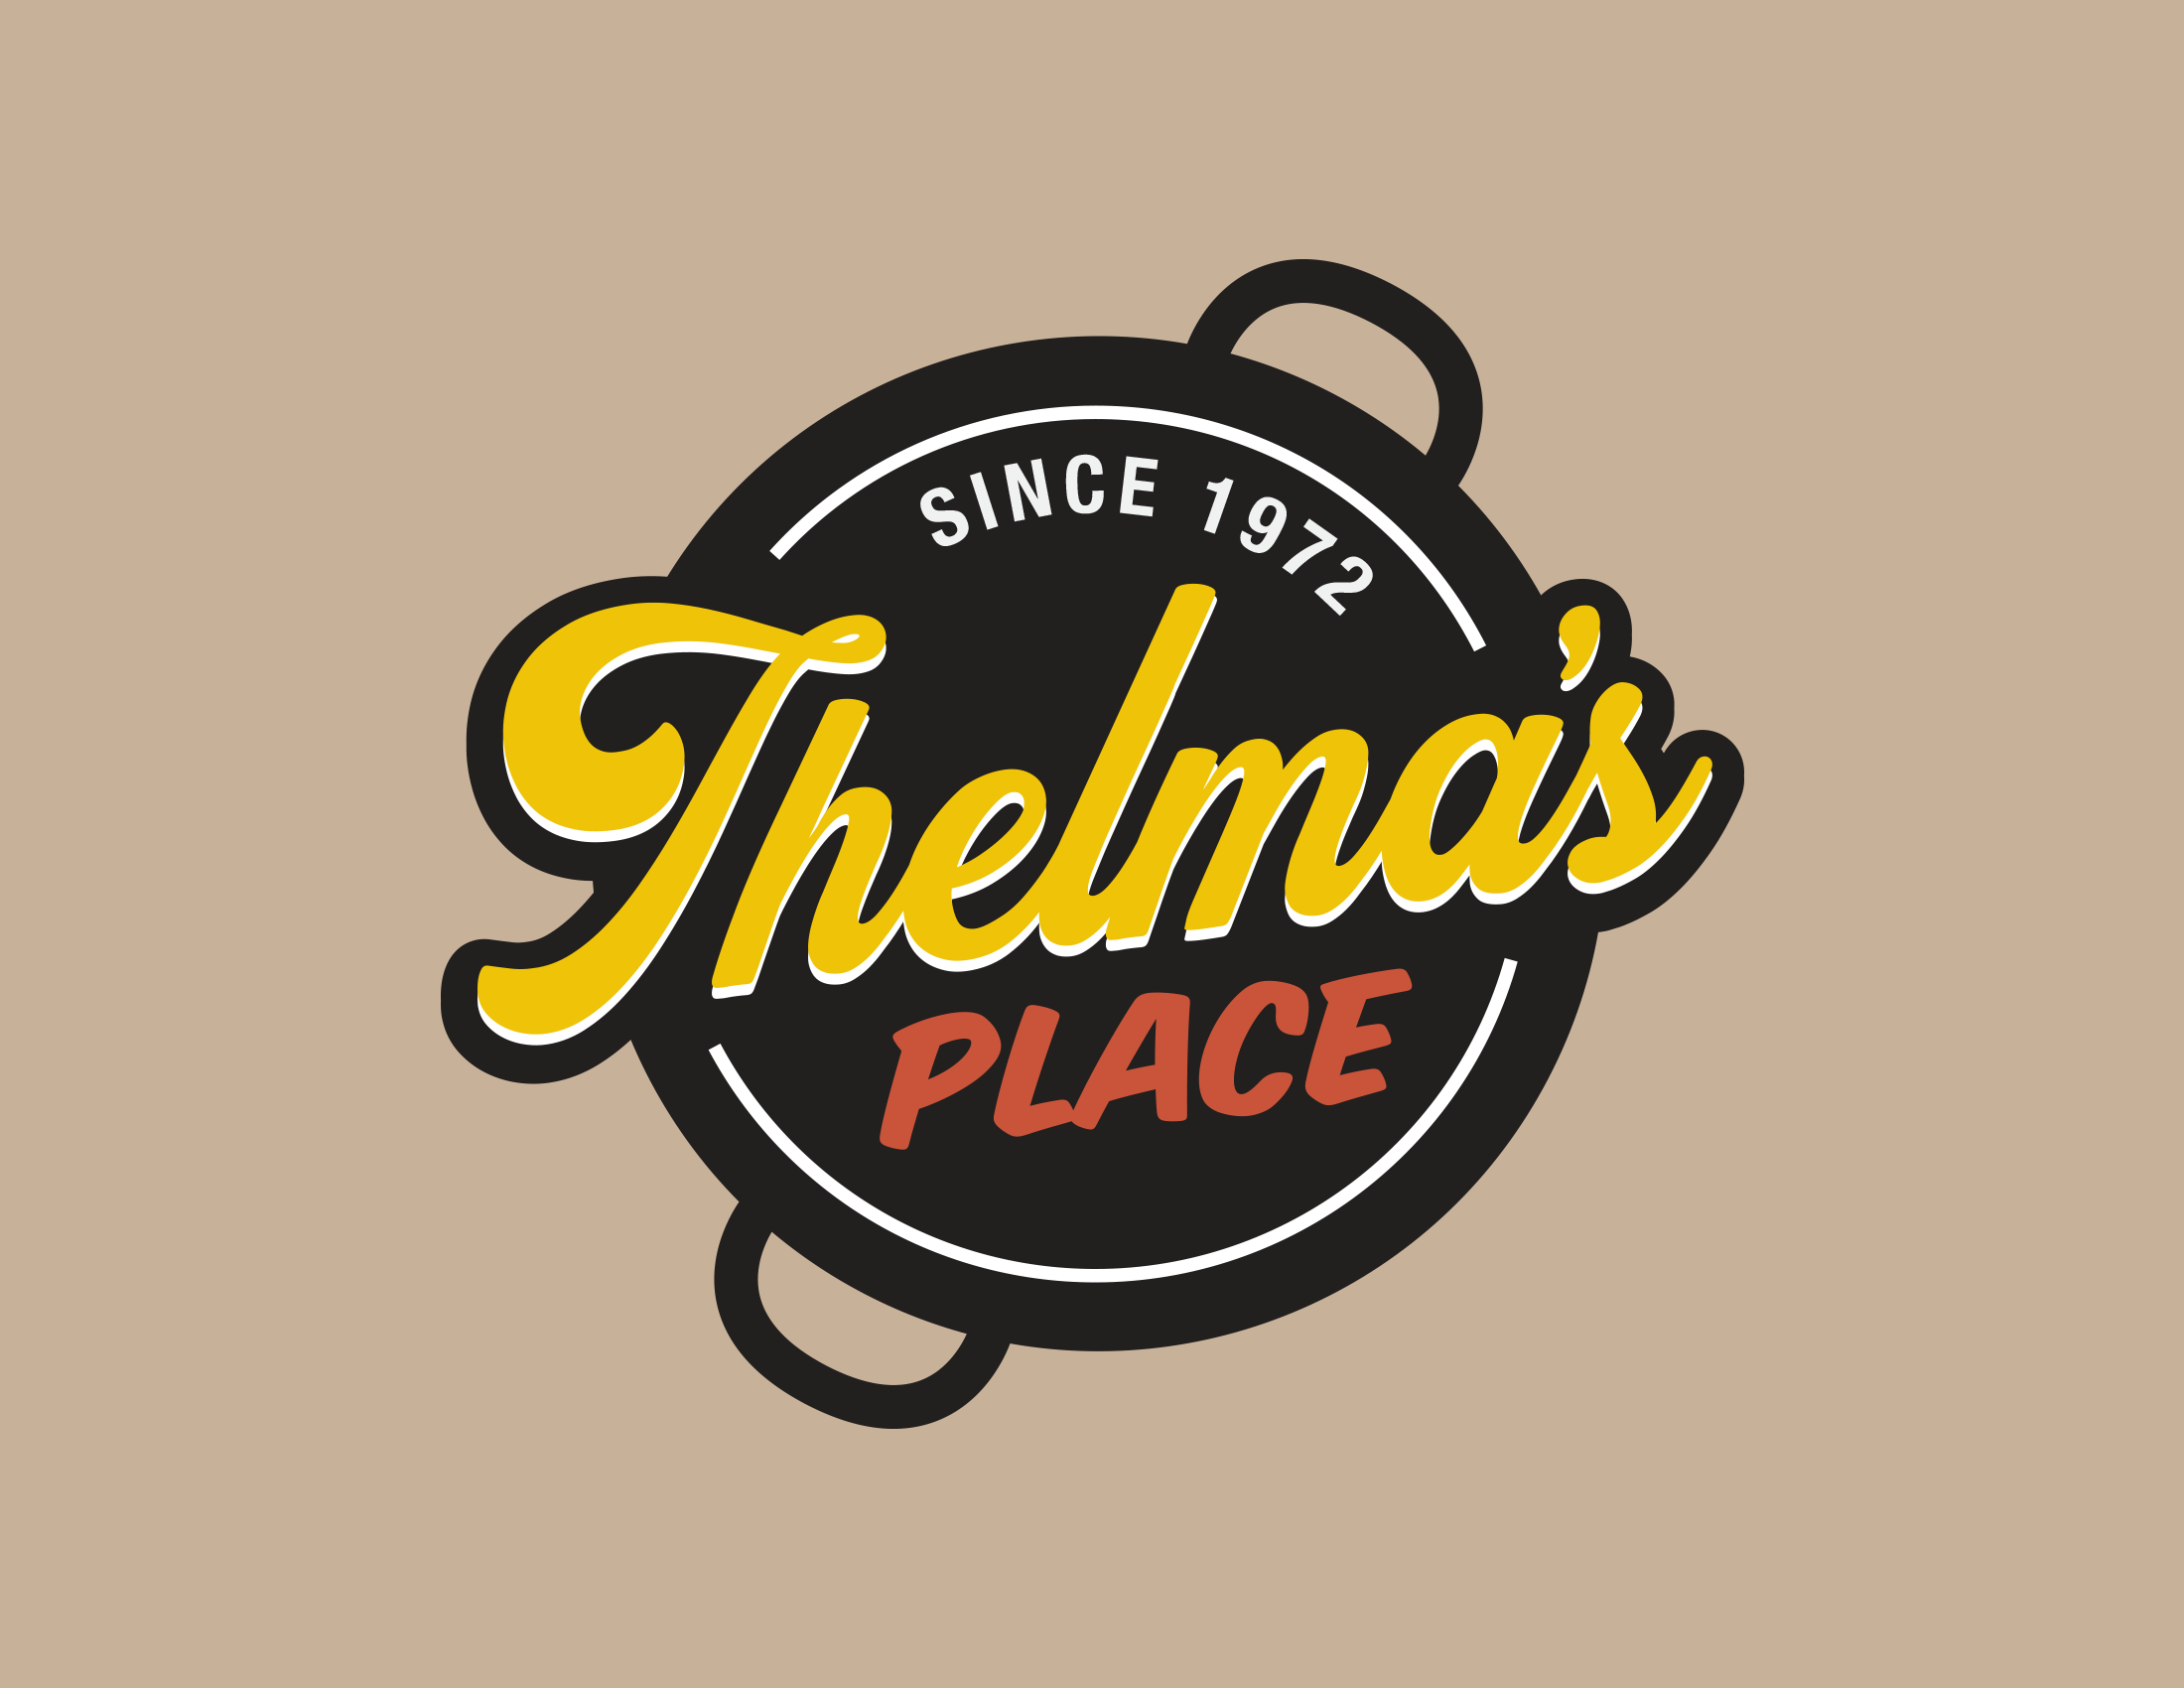 Thelma's Place logo